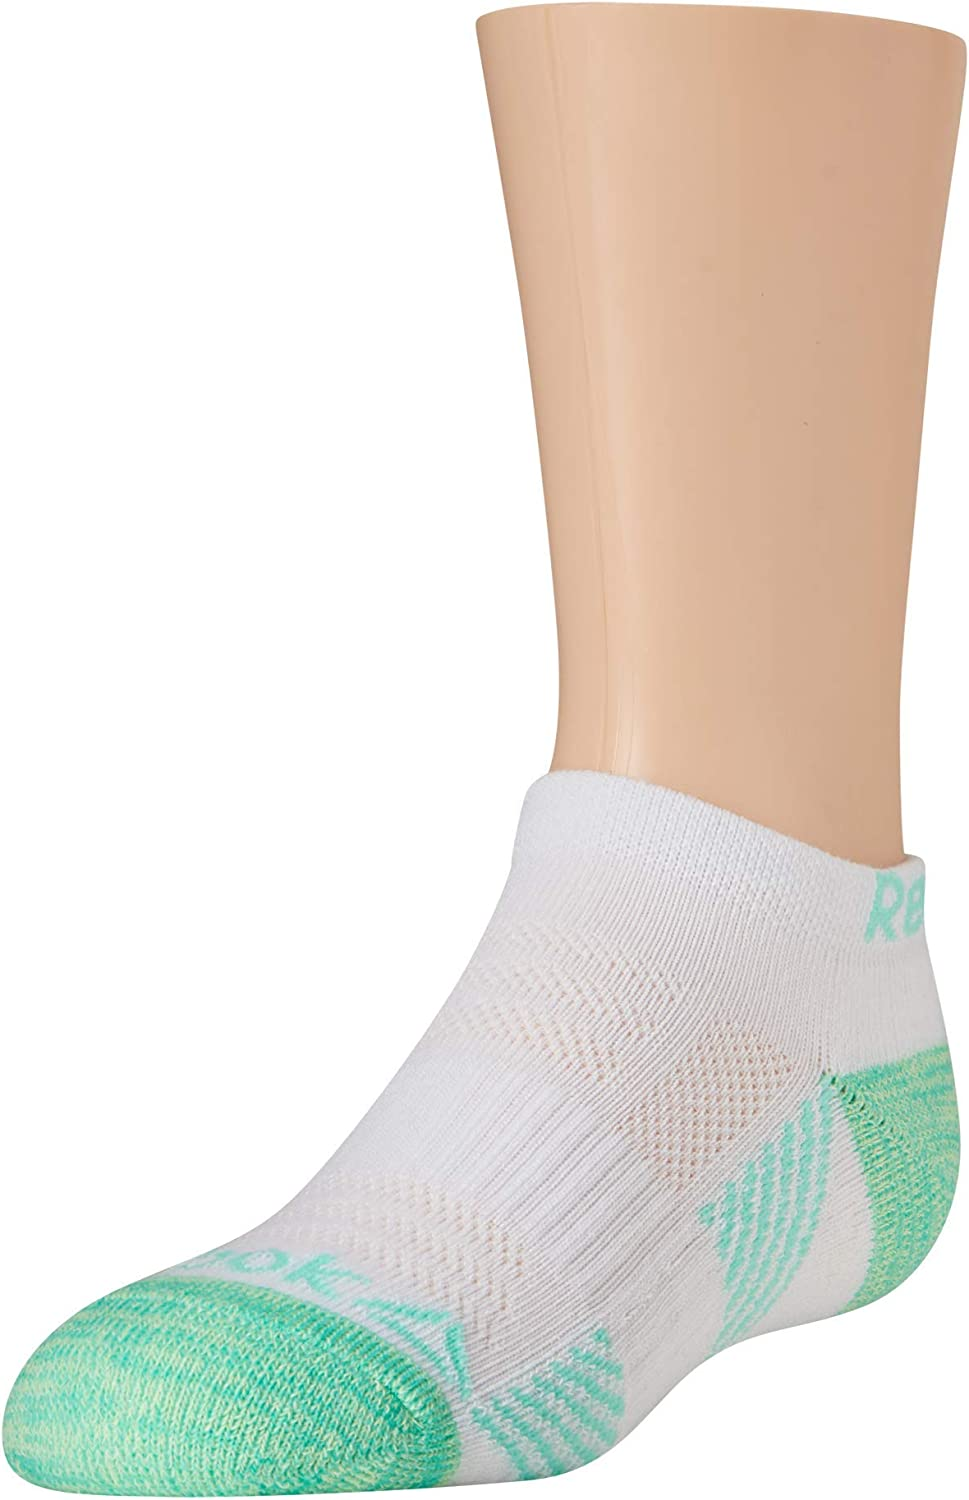 Reebok Girls Cushioned Comfort Athletic Performance No-Show Ankle Low Cut Socks 6 Pack